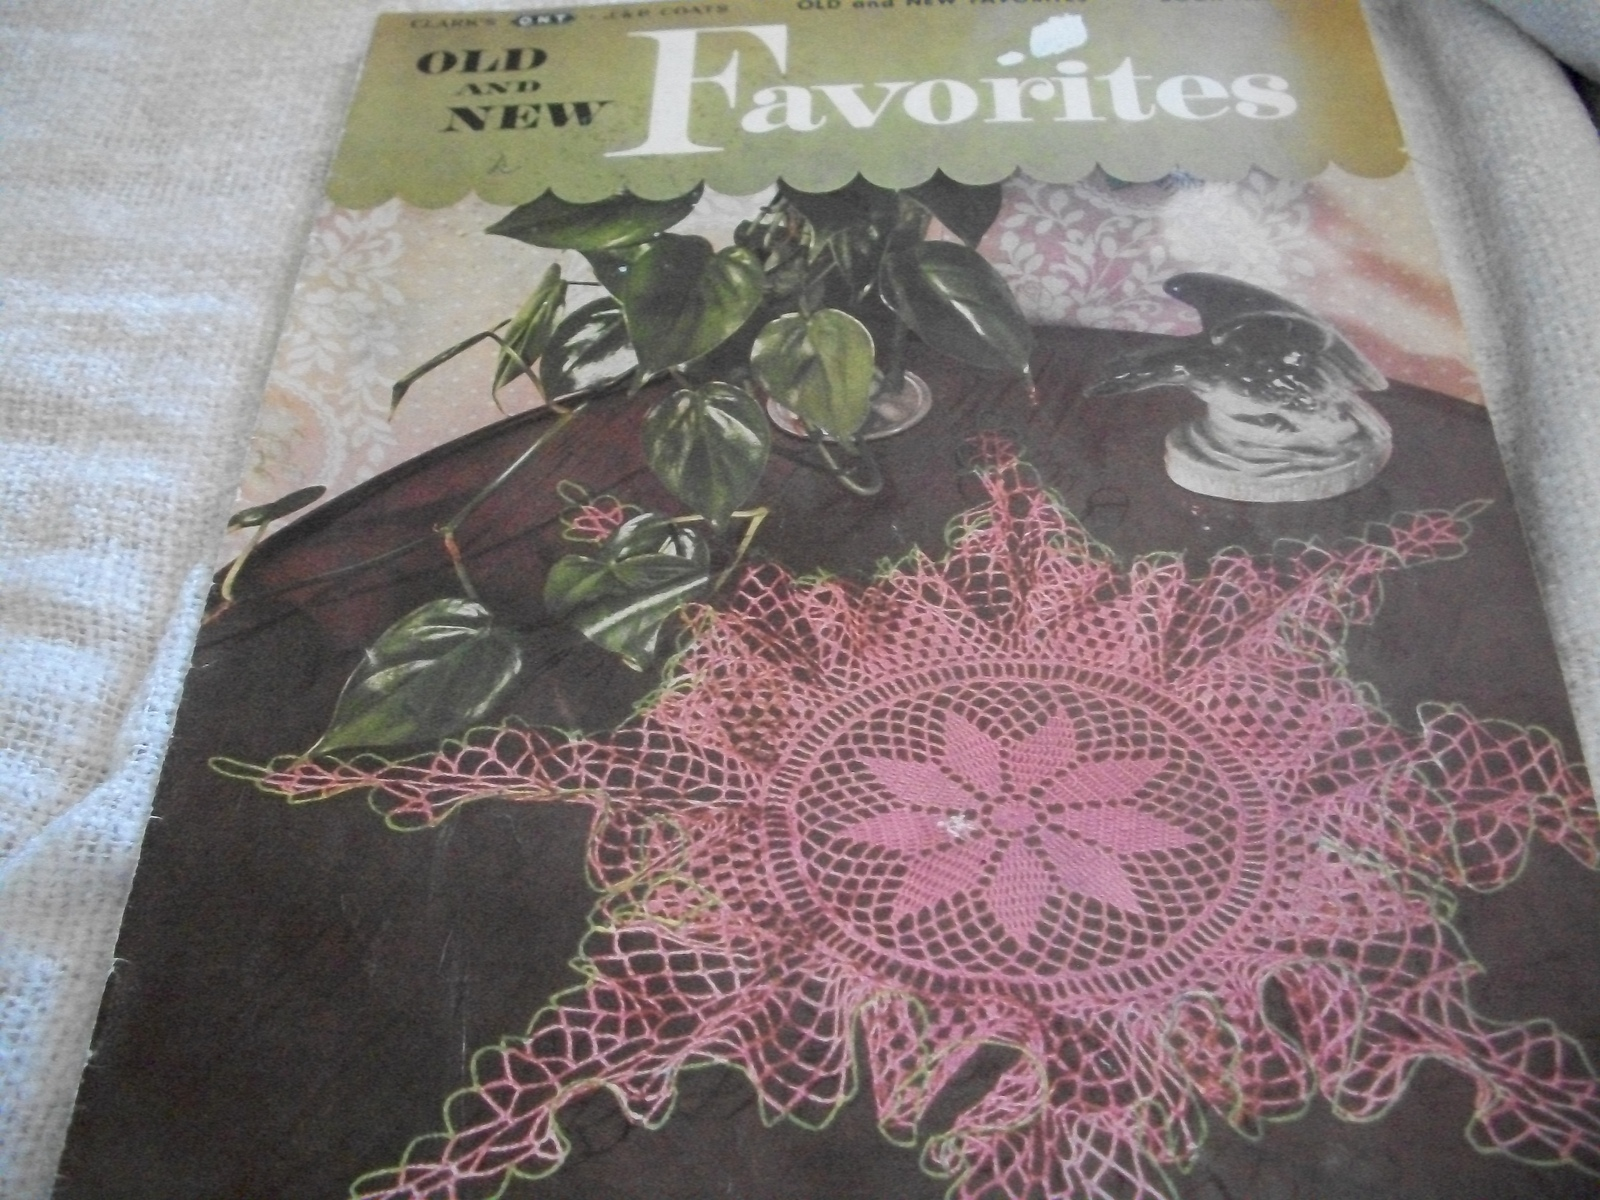 Clarks & J & P Coats Book No. 269~Old and New Favorites Crochet Book - $8.00